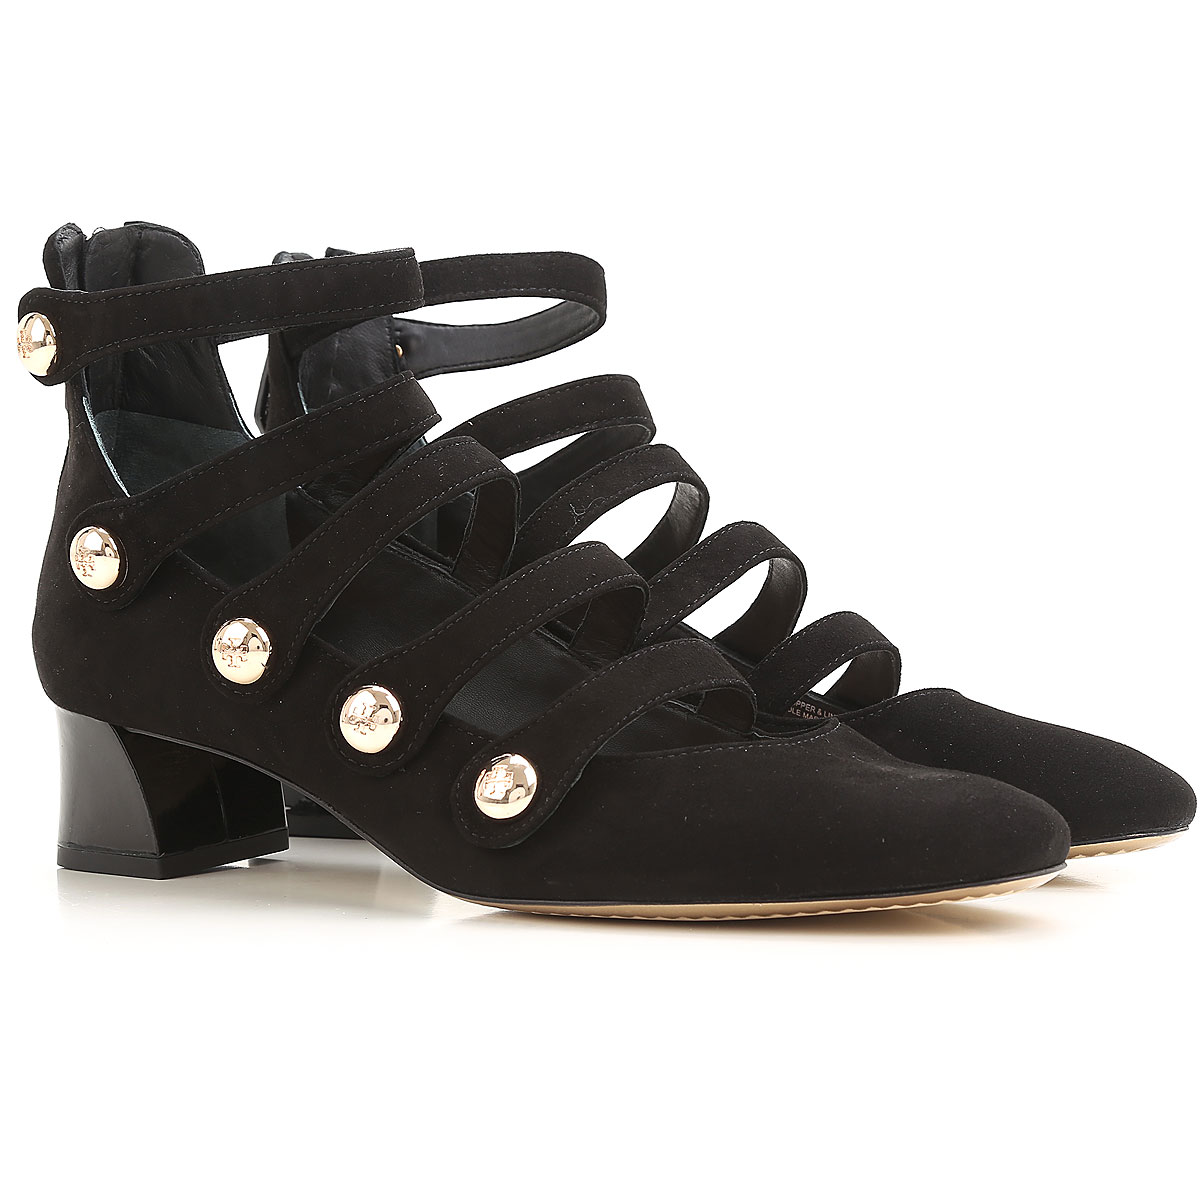 Tory Burch Pumps & High Heels for Women in Outlet Black USA - GOOFASH